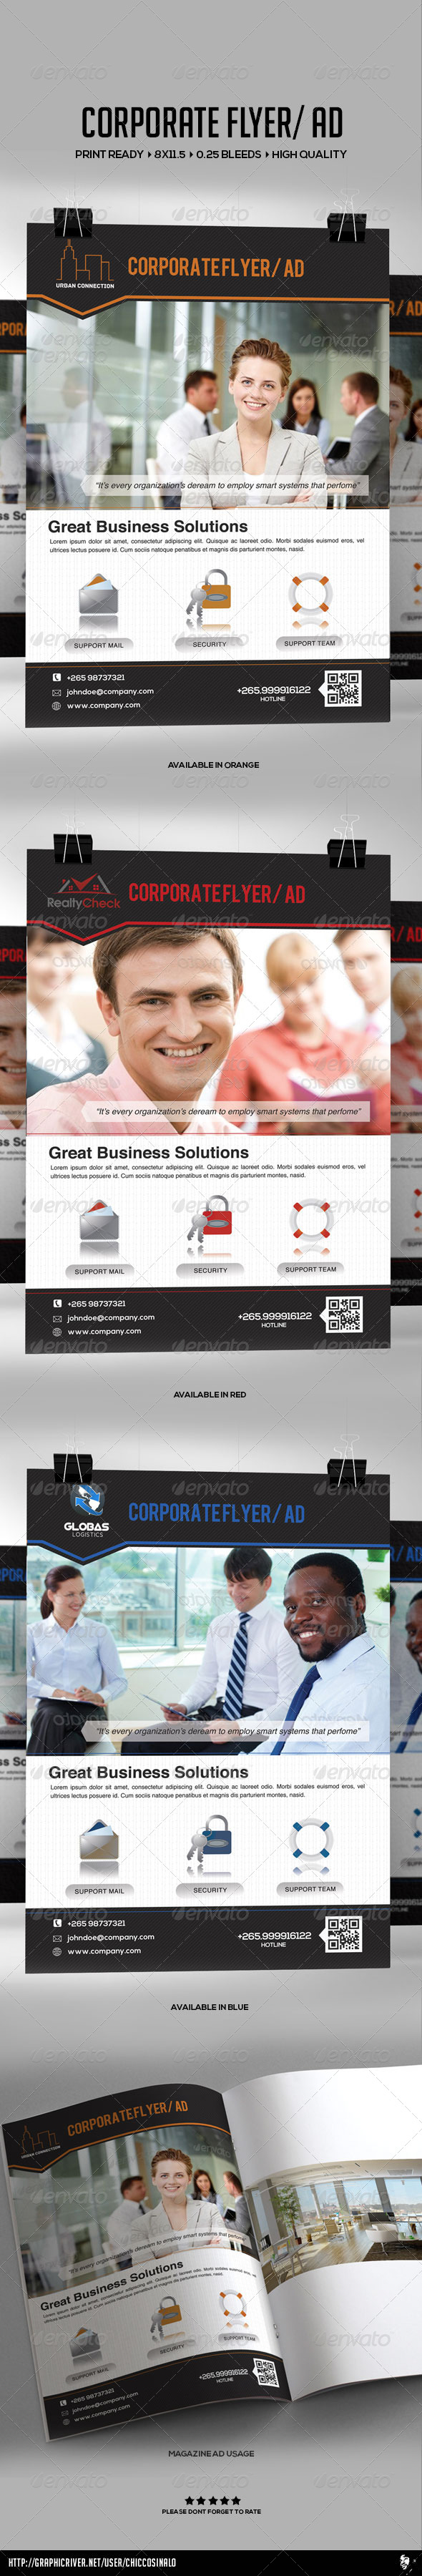 GraphicRiver Corporate Flyer Ad Template 4897380